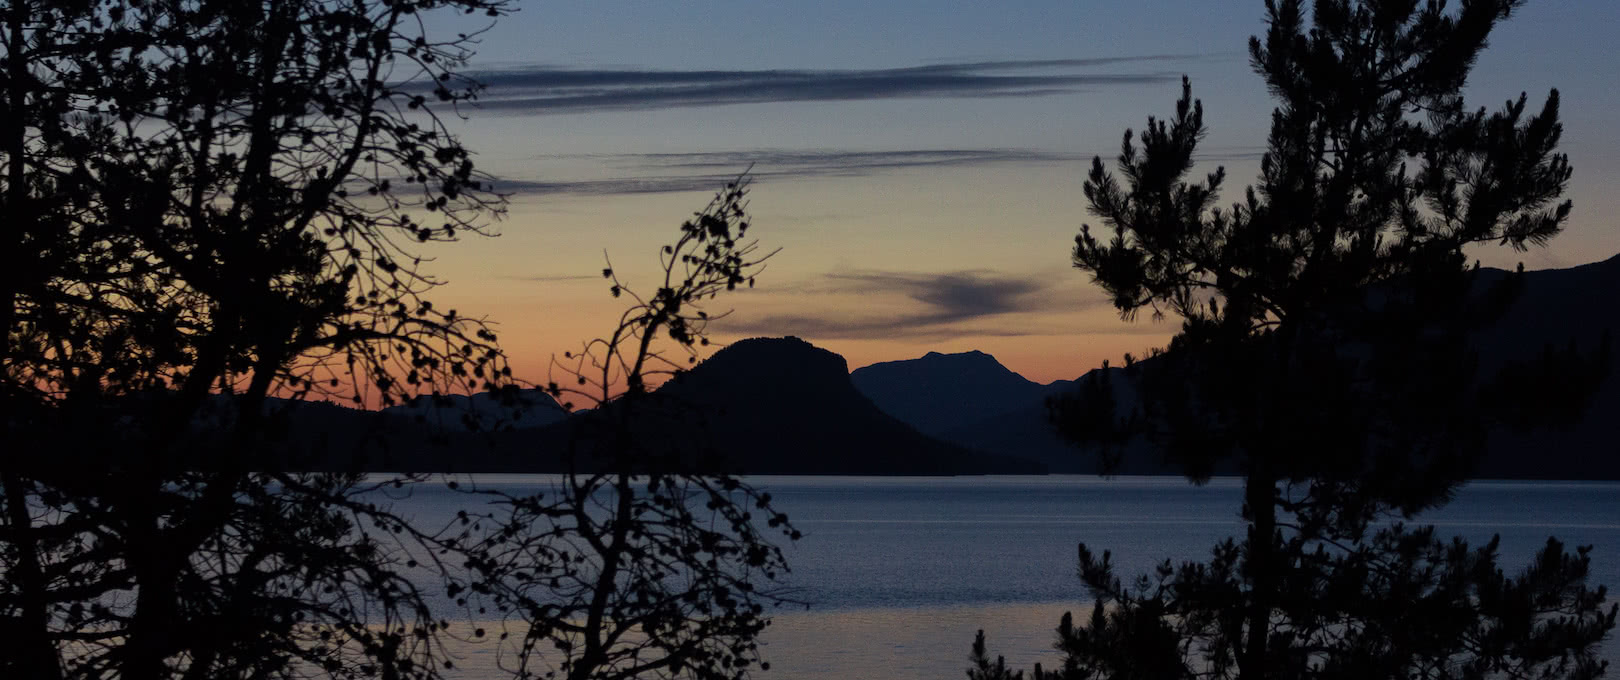 Sunset over Cortes Island in Desolation Sound seen from the eco resort